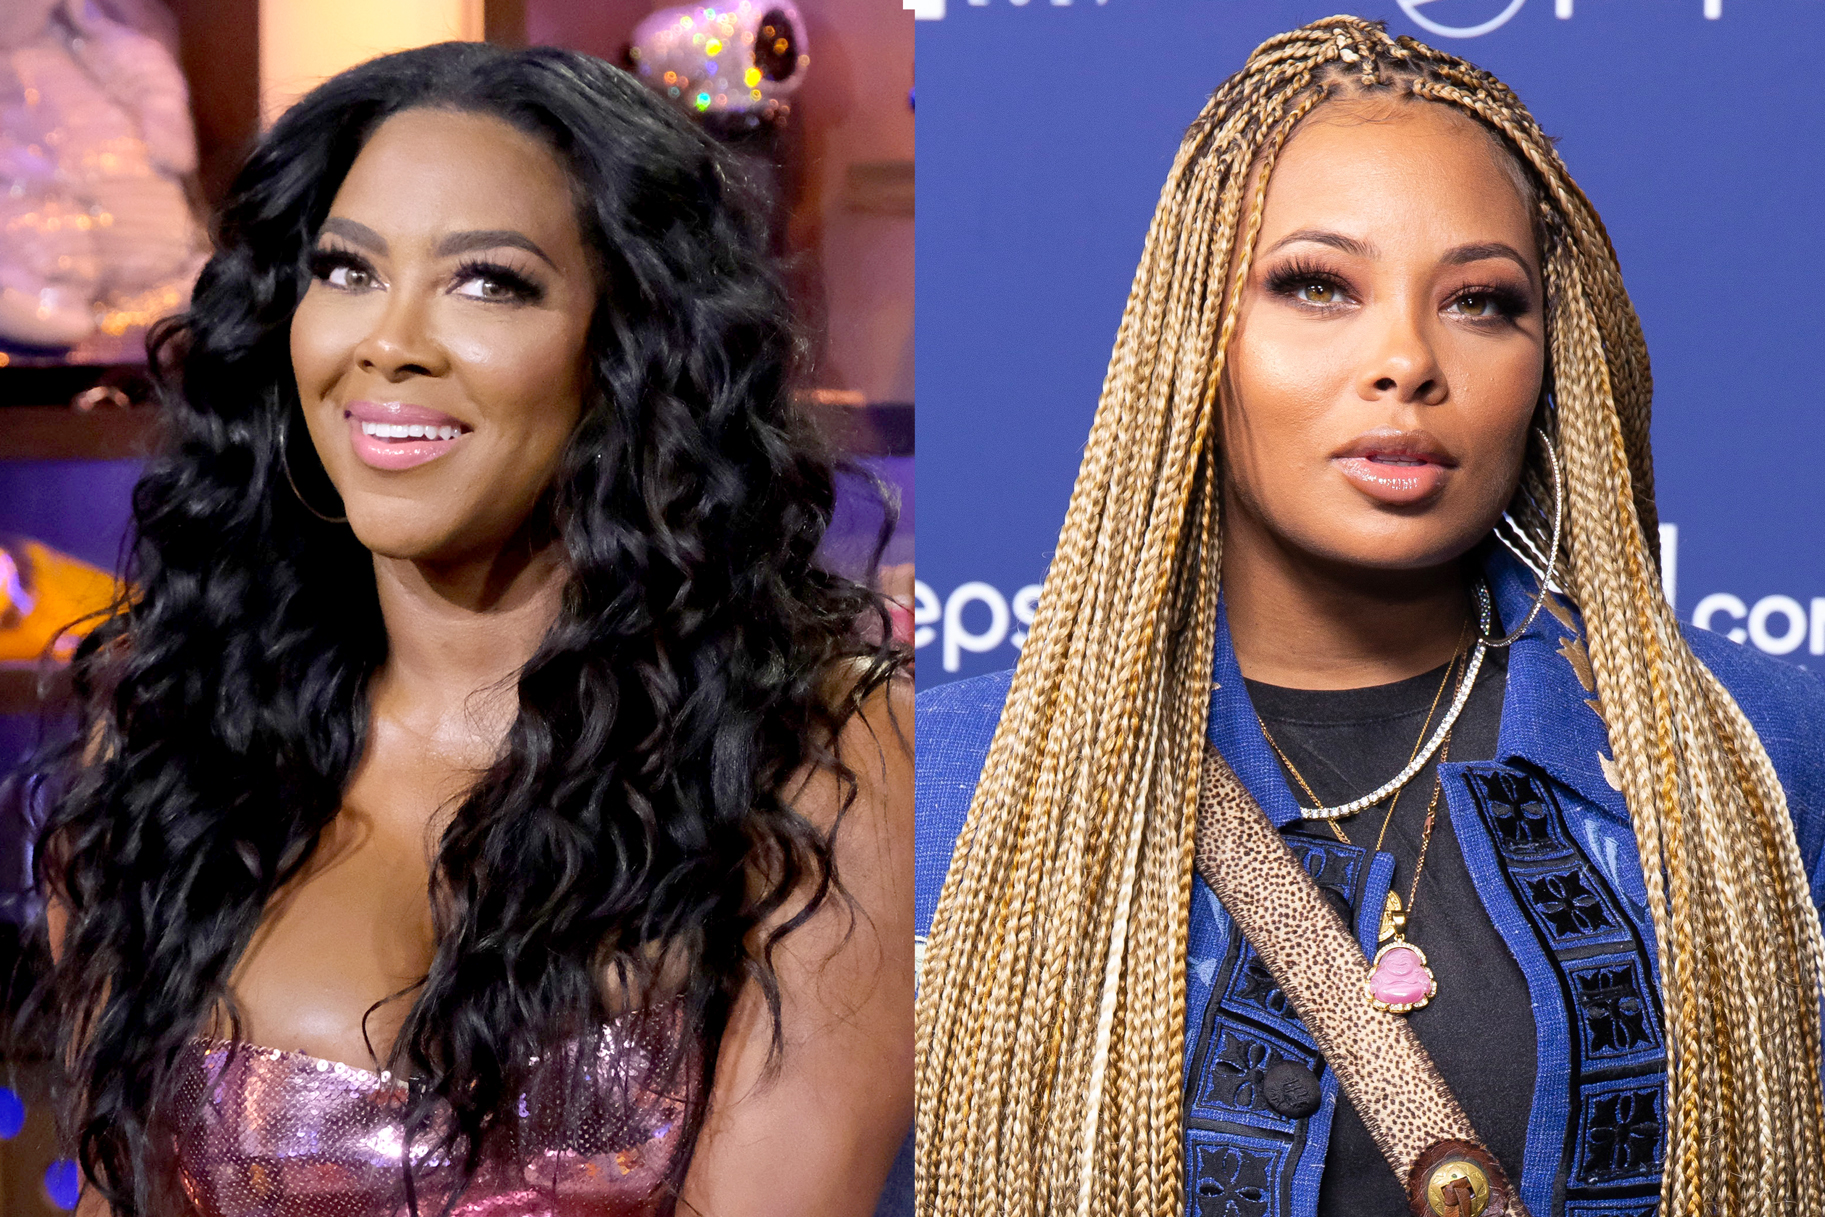 """eva-marcille-raises-a-tough-issue-and-kenya-moore-offers-an-answer-that-sparks-massive-debate"""